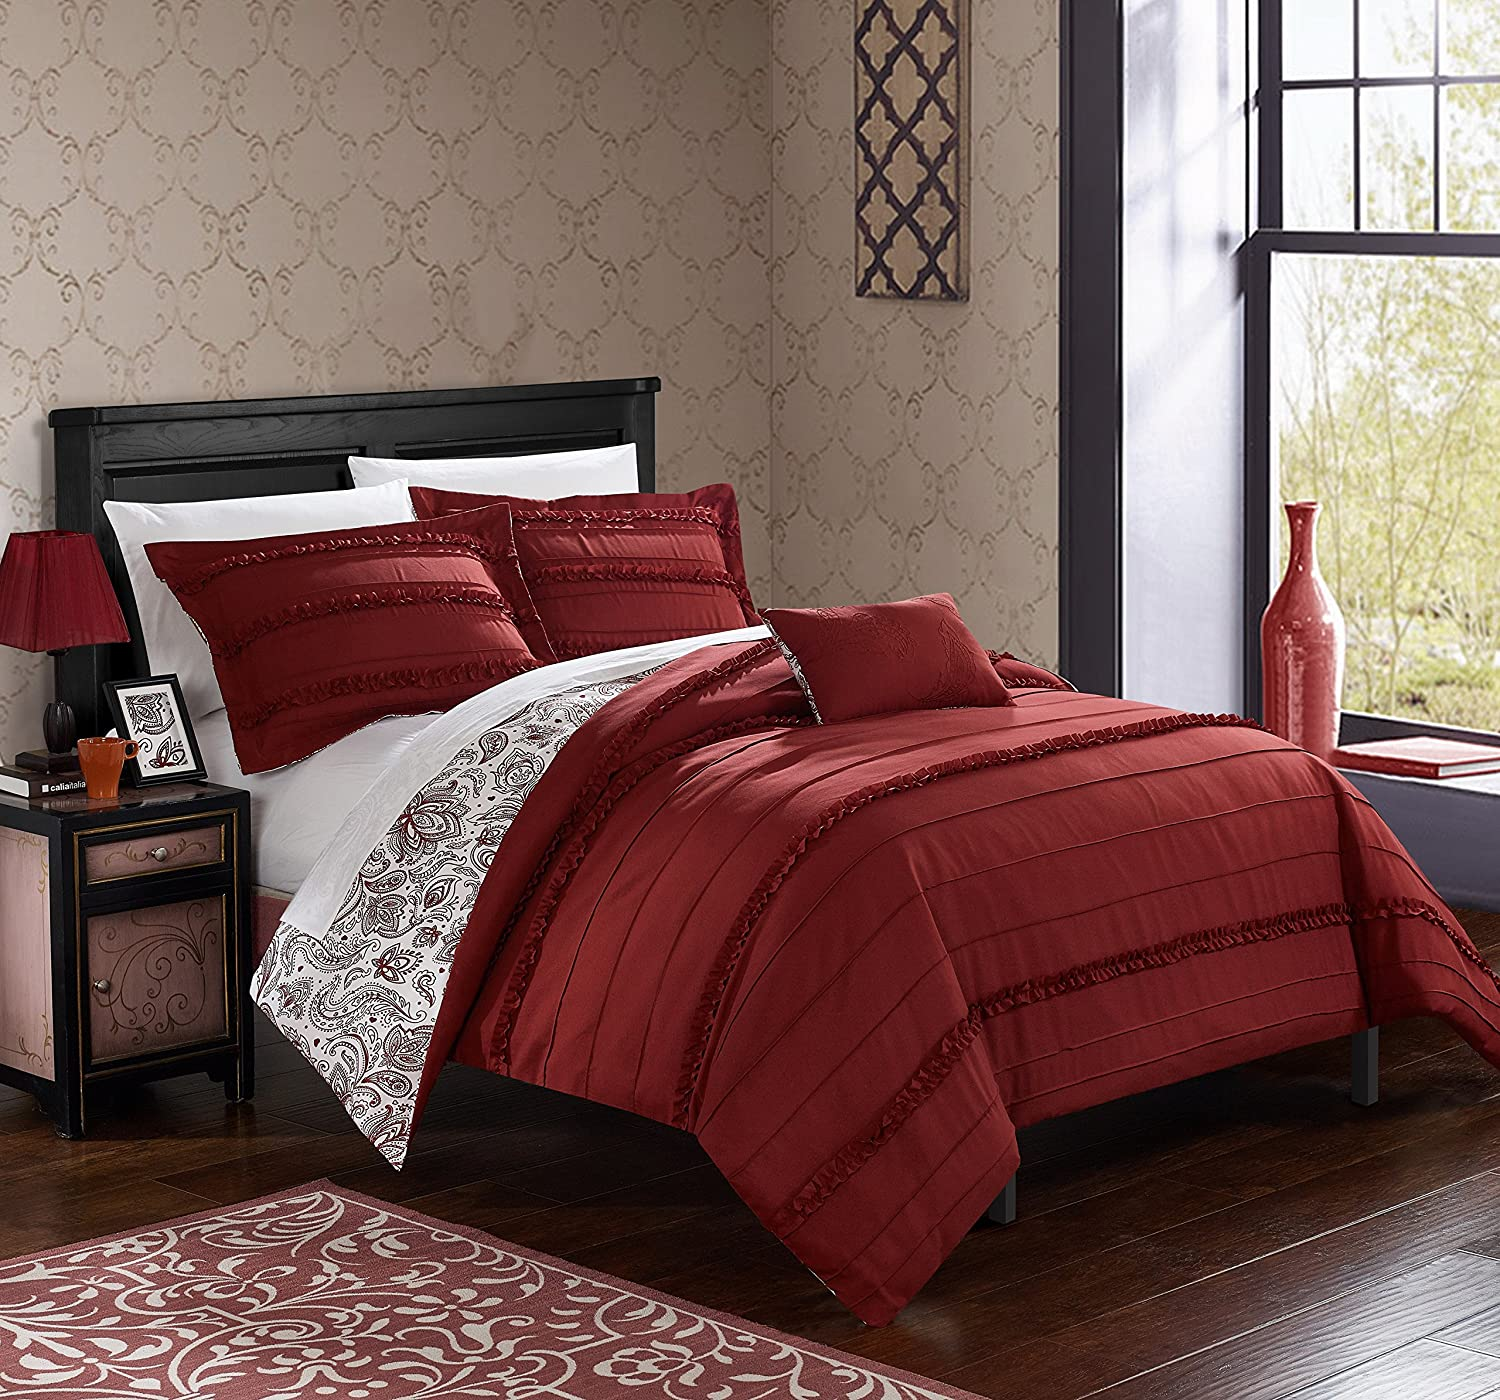 Chic Home 4 Piece Eliza Pleated/Ruffled Reversible Paisley Floral Print Duvet Cover Set Shams/Decorative Pillows, Queen, Brick